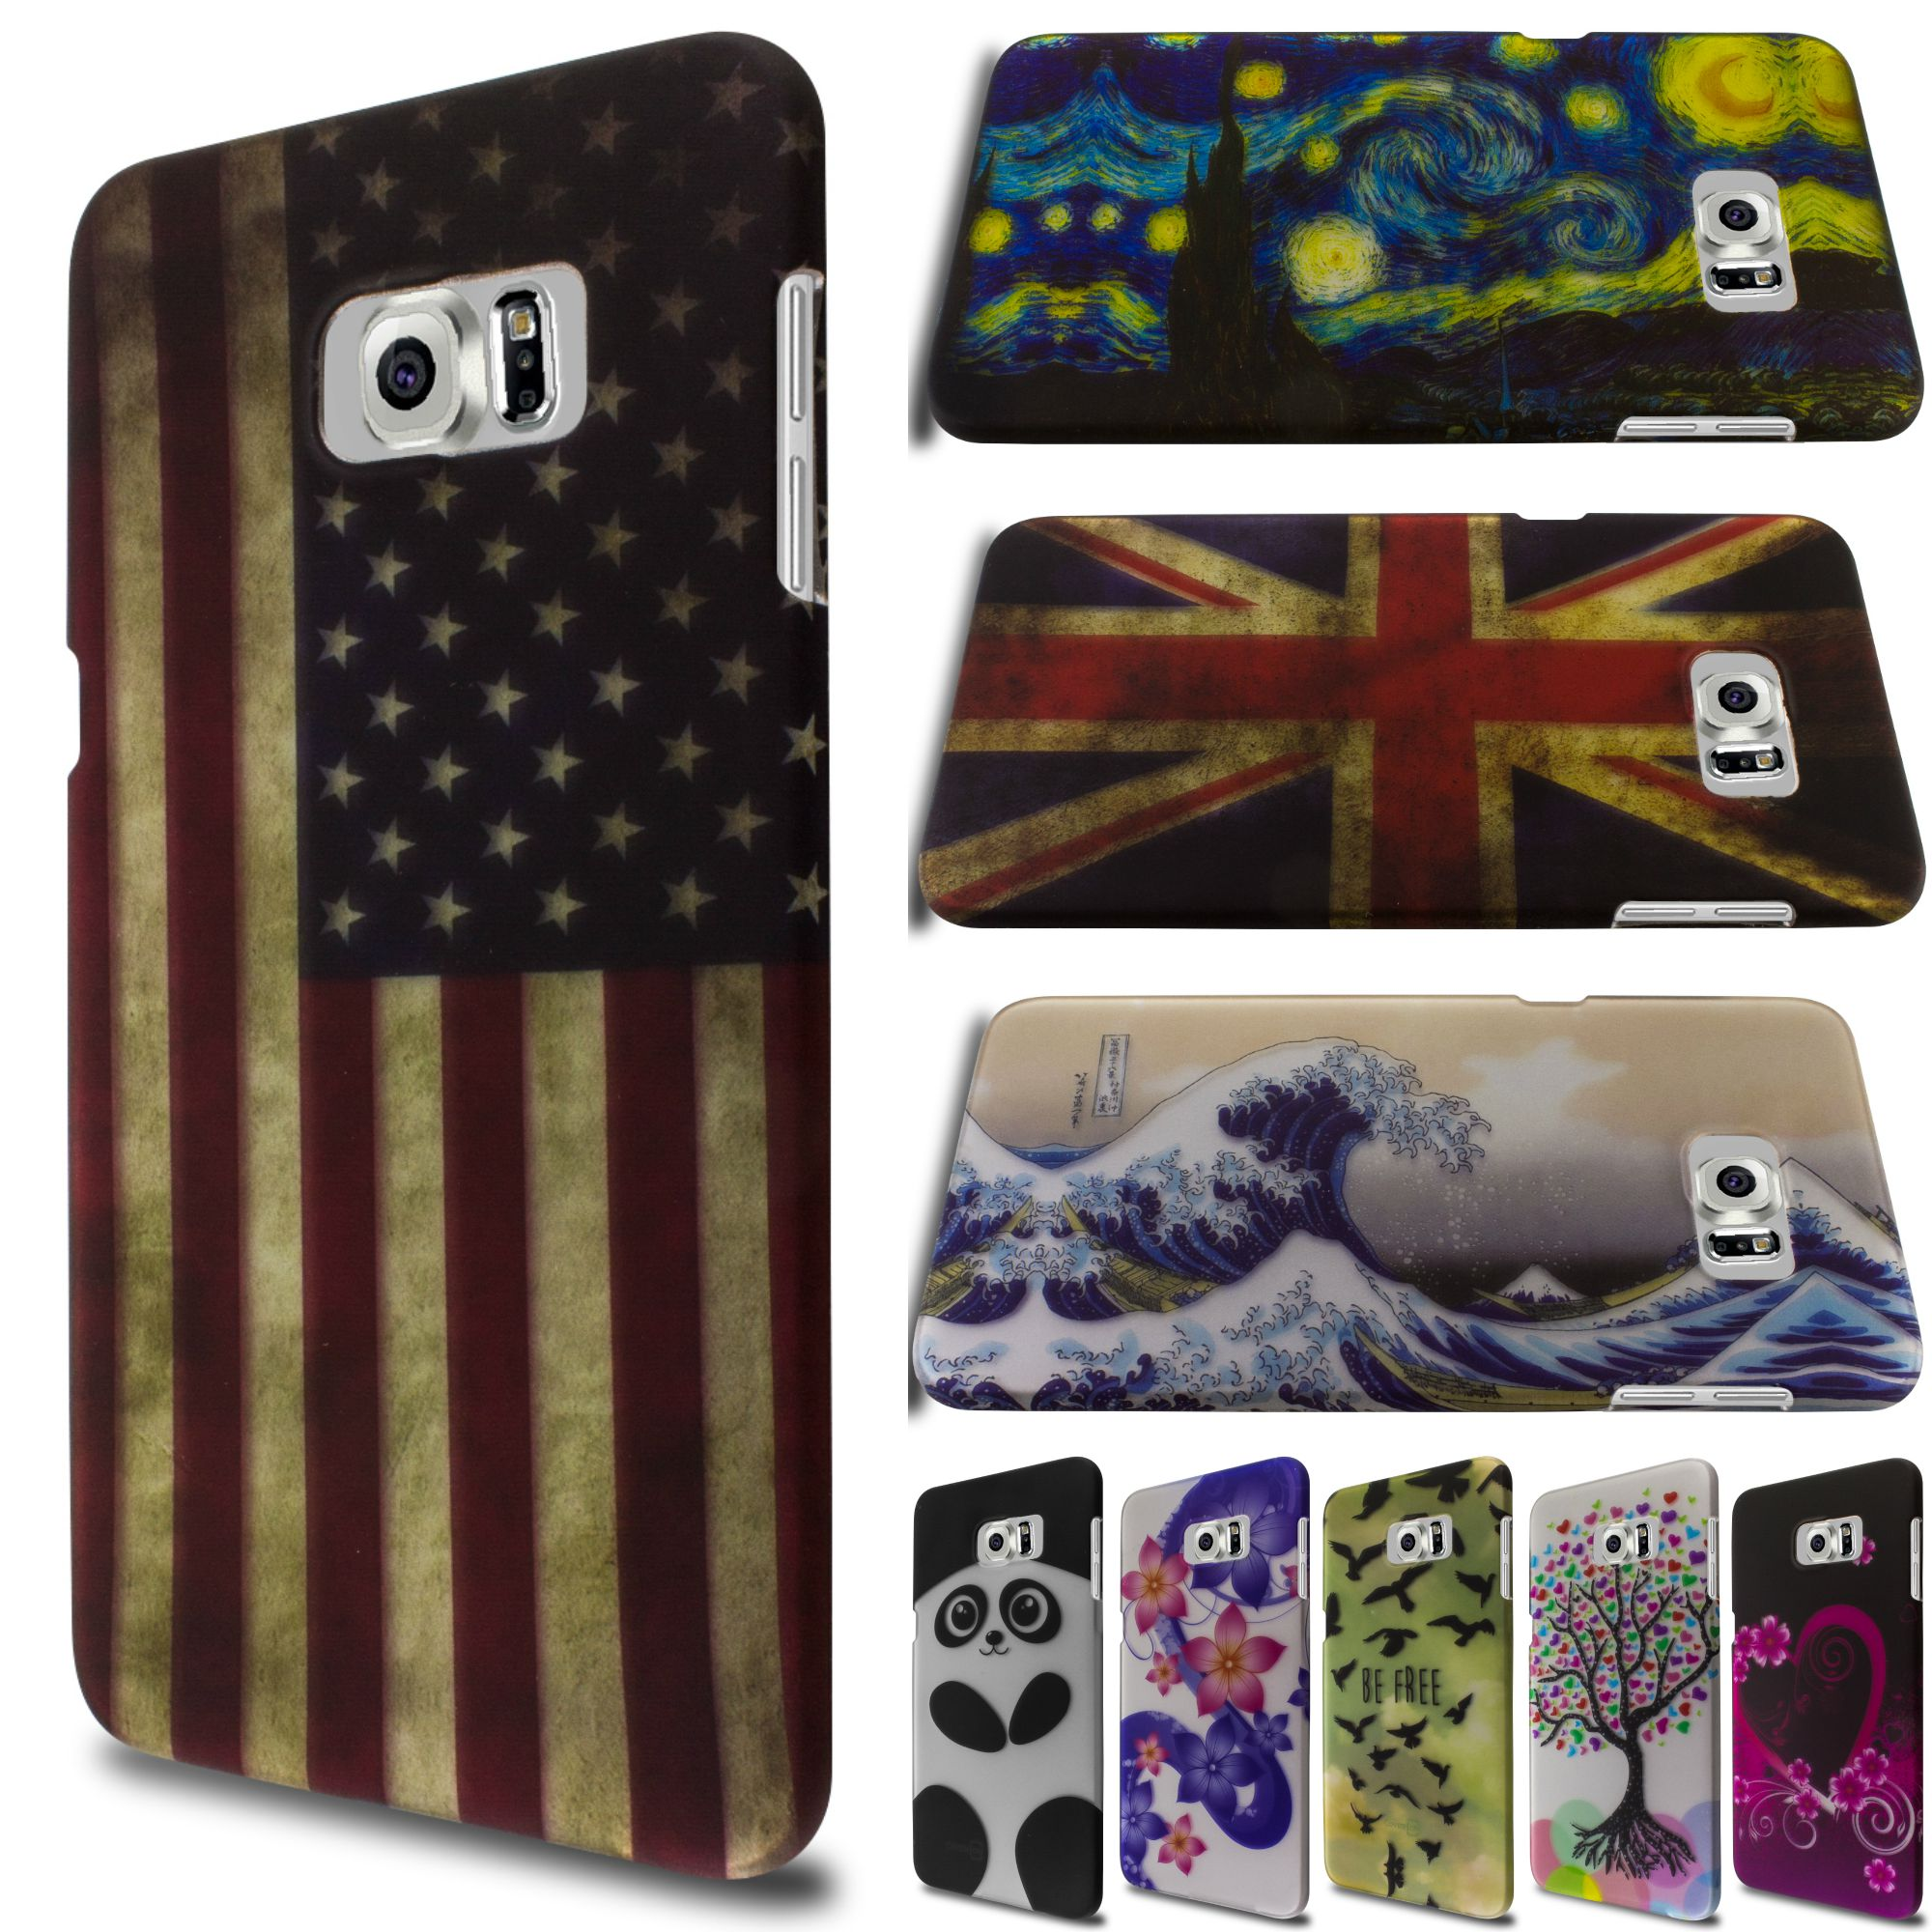 for samsung galaxy s6 edge plus case hard slim phone cover designdetails about for samsung galaxy s6 edge plus case hard slim phone cover design accessory